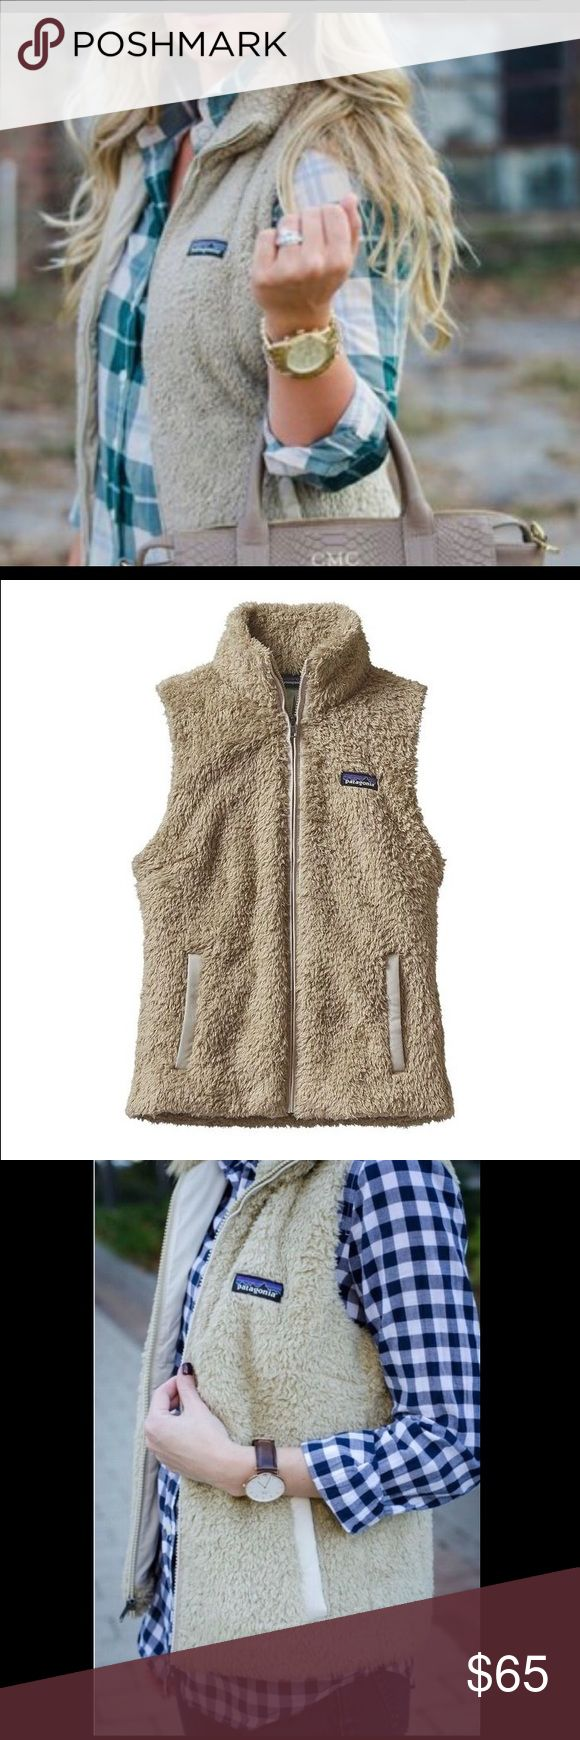 Patagonia vest. Patagonia Los Gatos Fleece vest in the color khaki. I have only worn this vest a handful of times and it is in awesome condition! It has soft fur all over and hand warmer pockets in front. A zipper going down the front keeps the cold out and the heat in! Fleece lined stand up collar. Size large but I wear a small and this still looked cute on me. Stylish and warm! Patagonia Jackets & Coats Vests